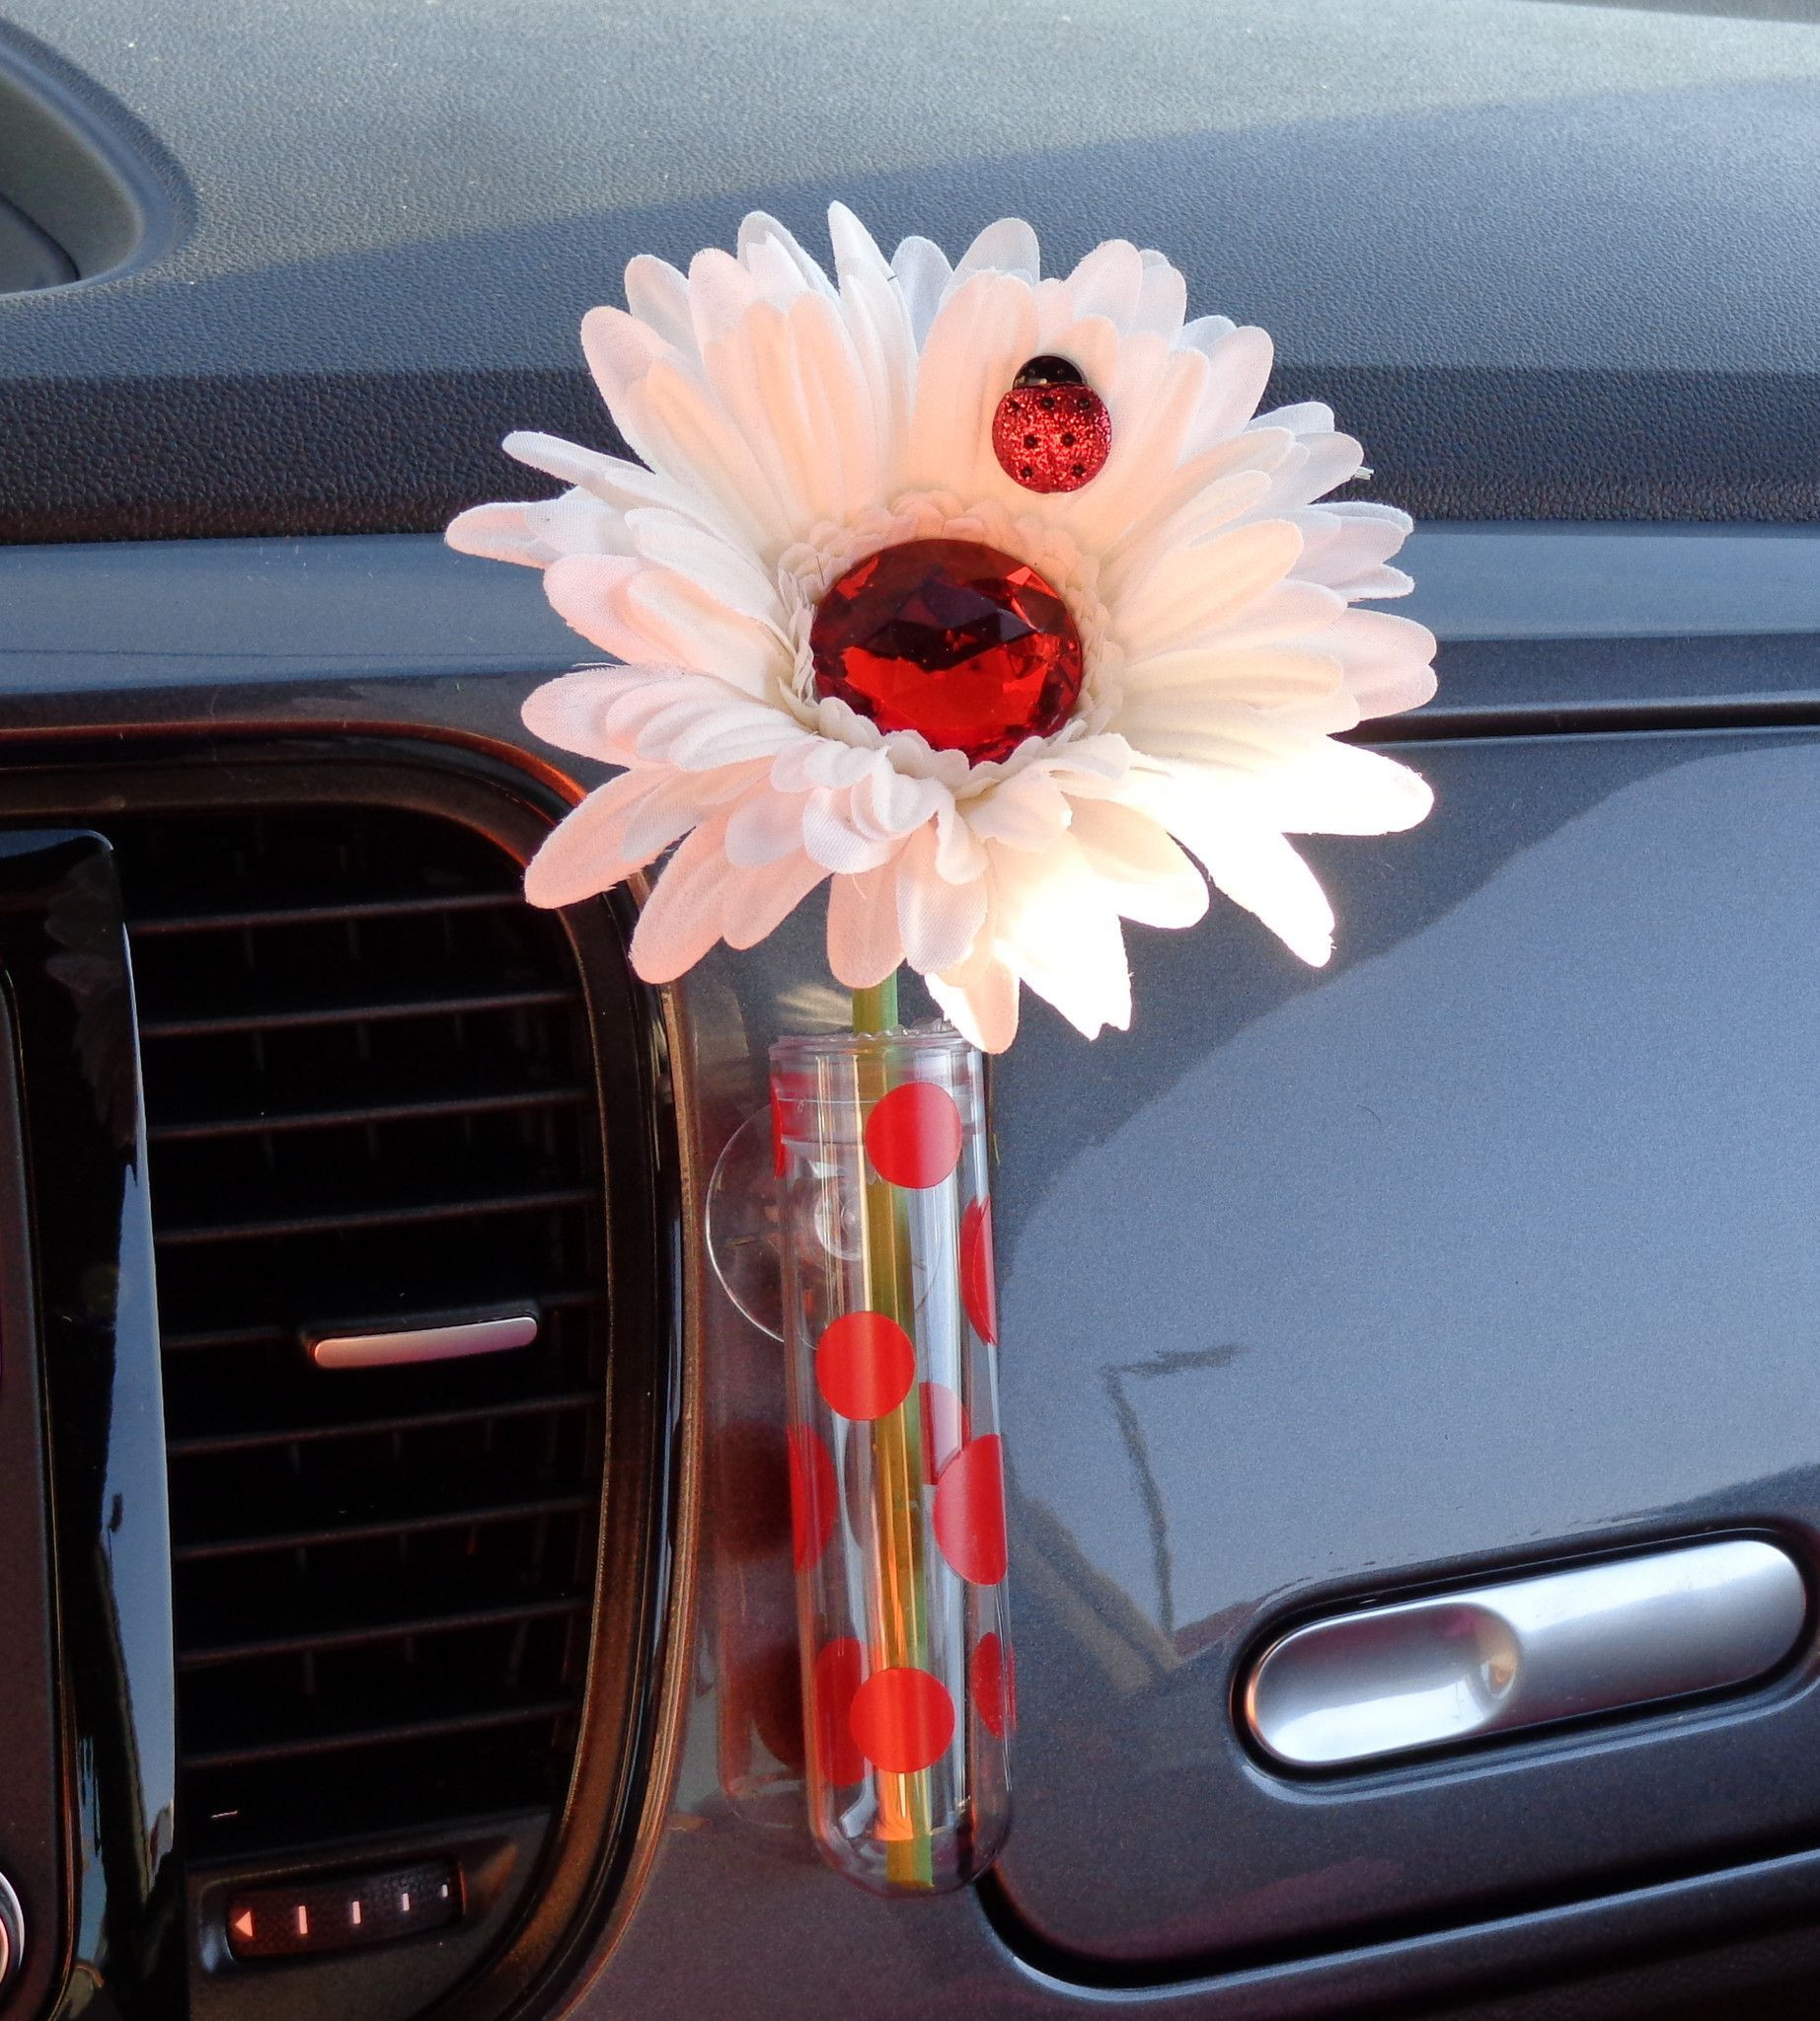 vw bud vase of vw flower vase with red flowers bmb for 450a6b231034759e76df8dfc1cac6670